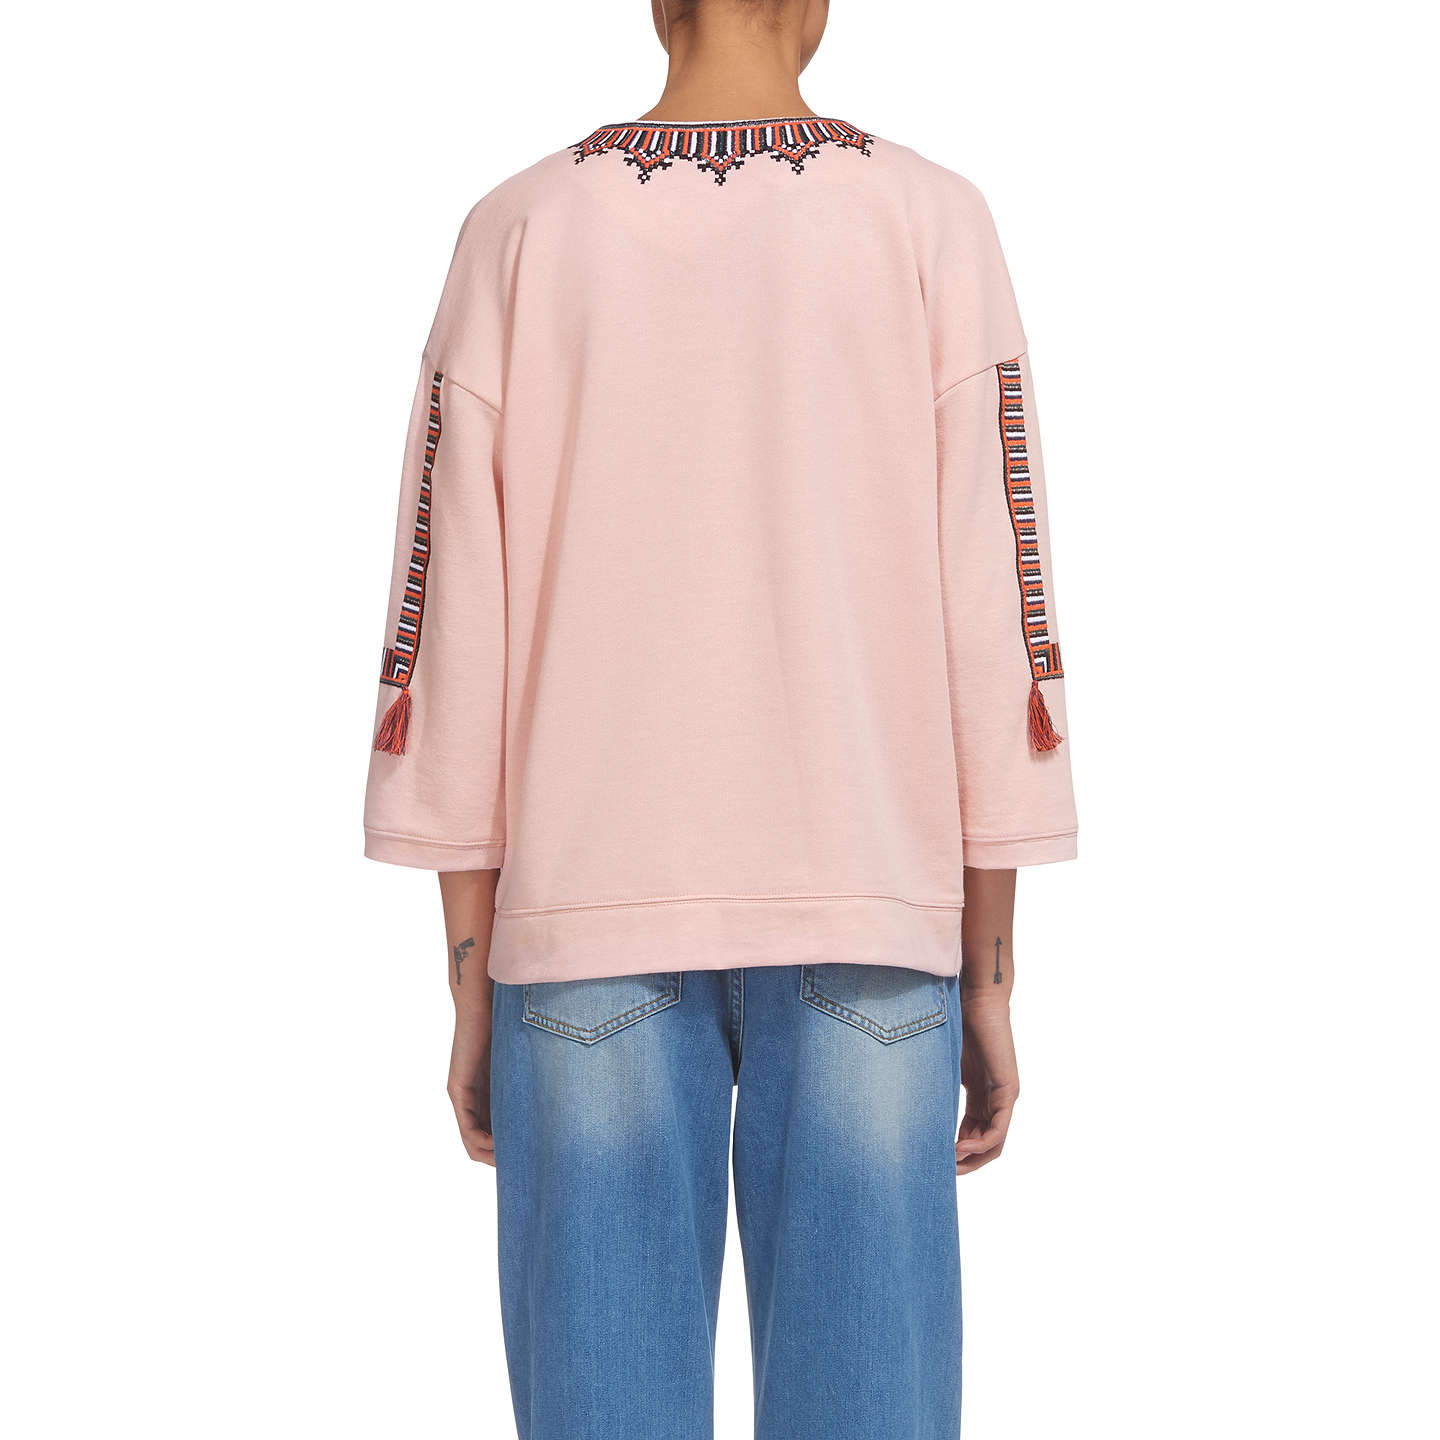 BuyWhistles Embroidered Open Neck Sweat, Pale Pink, XS Online at johnlewis.com